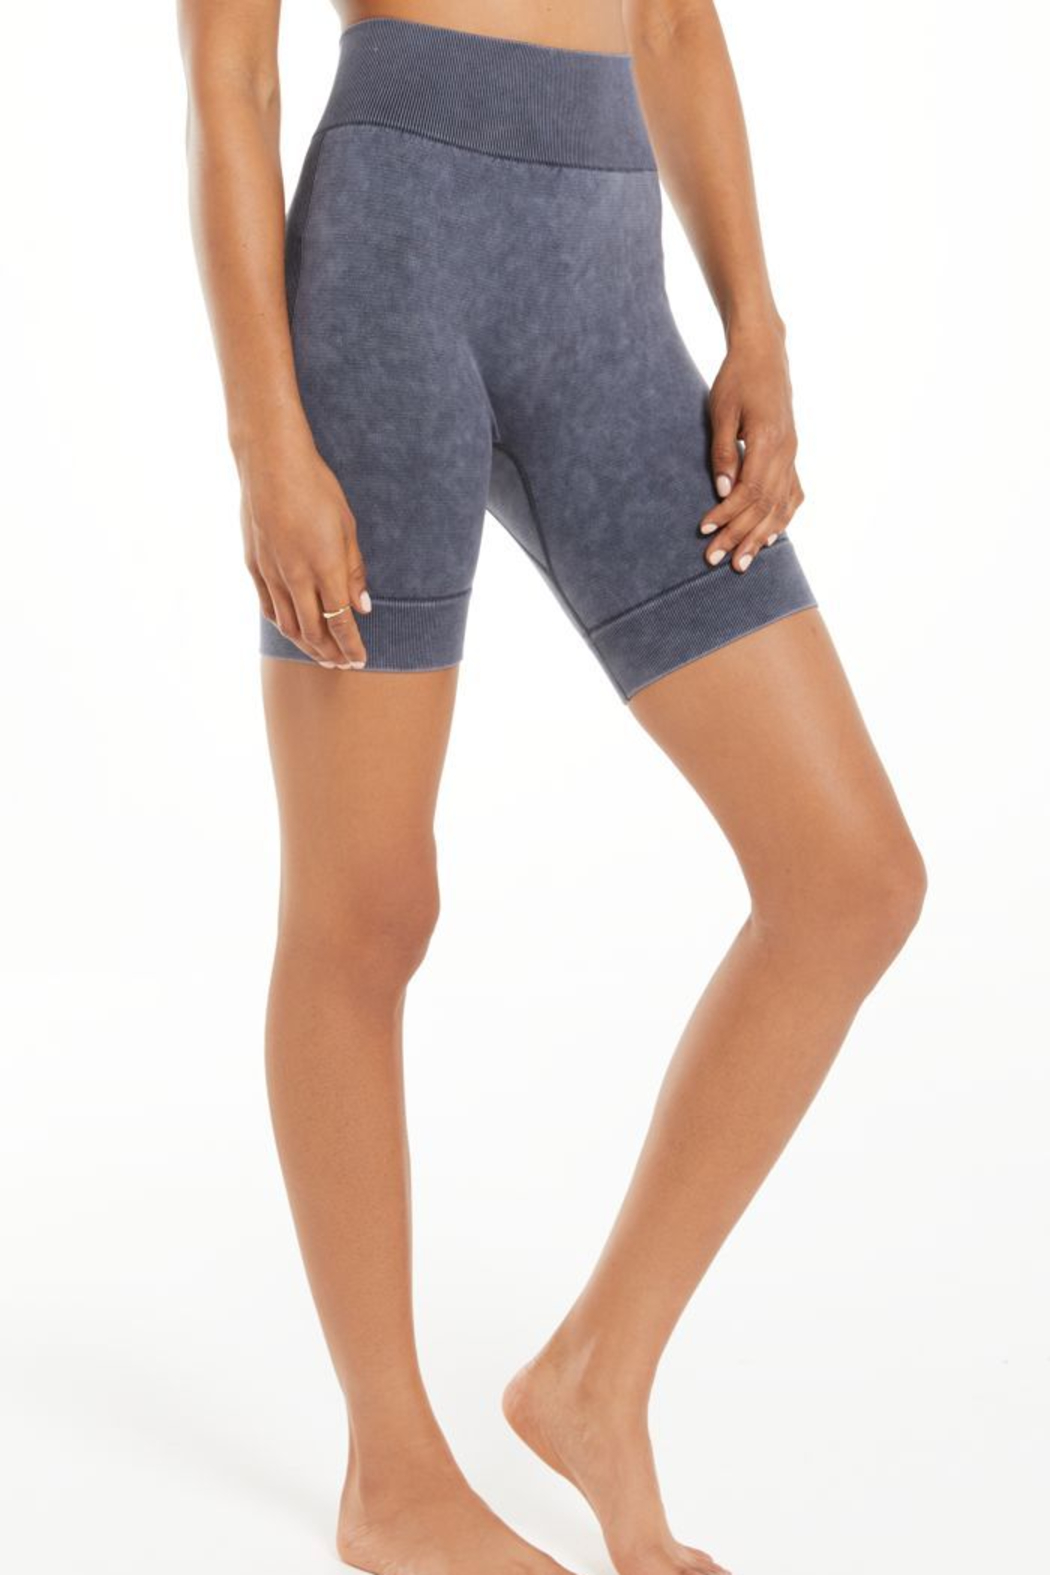 z supply Dance It Out Seamless Short - Front Full Image